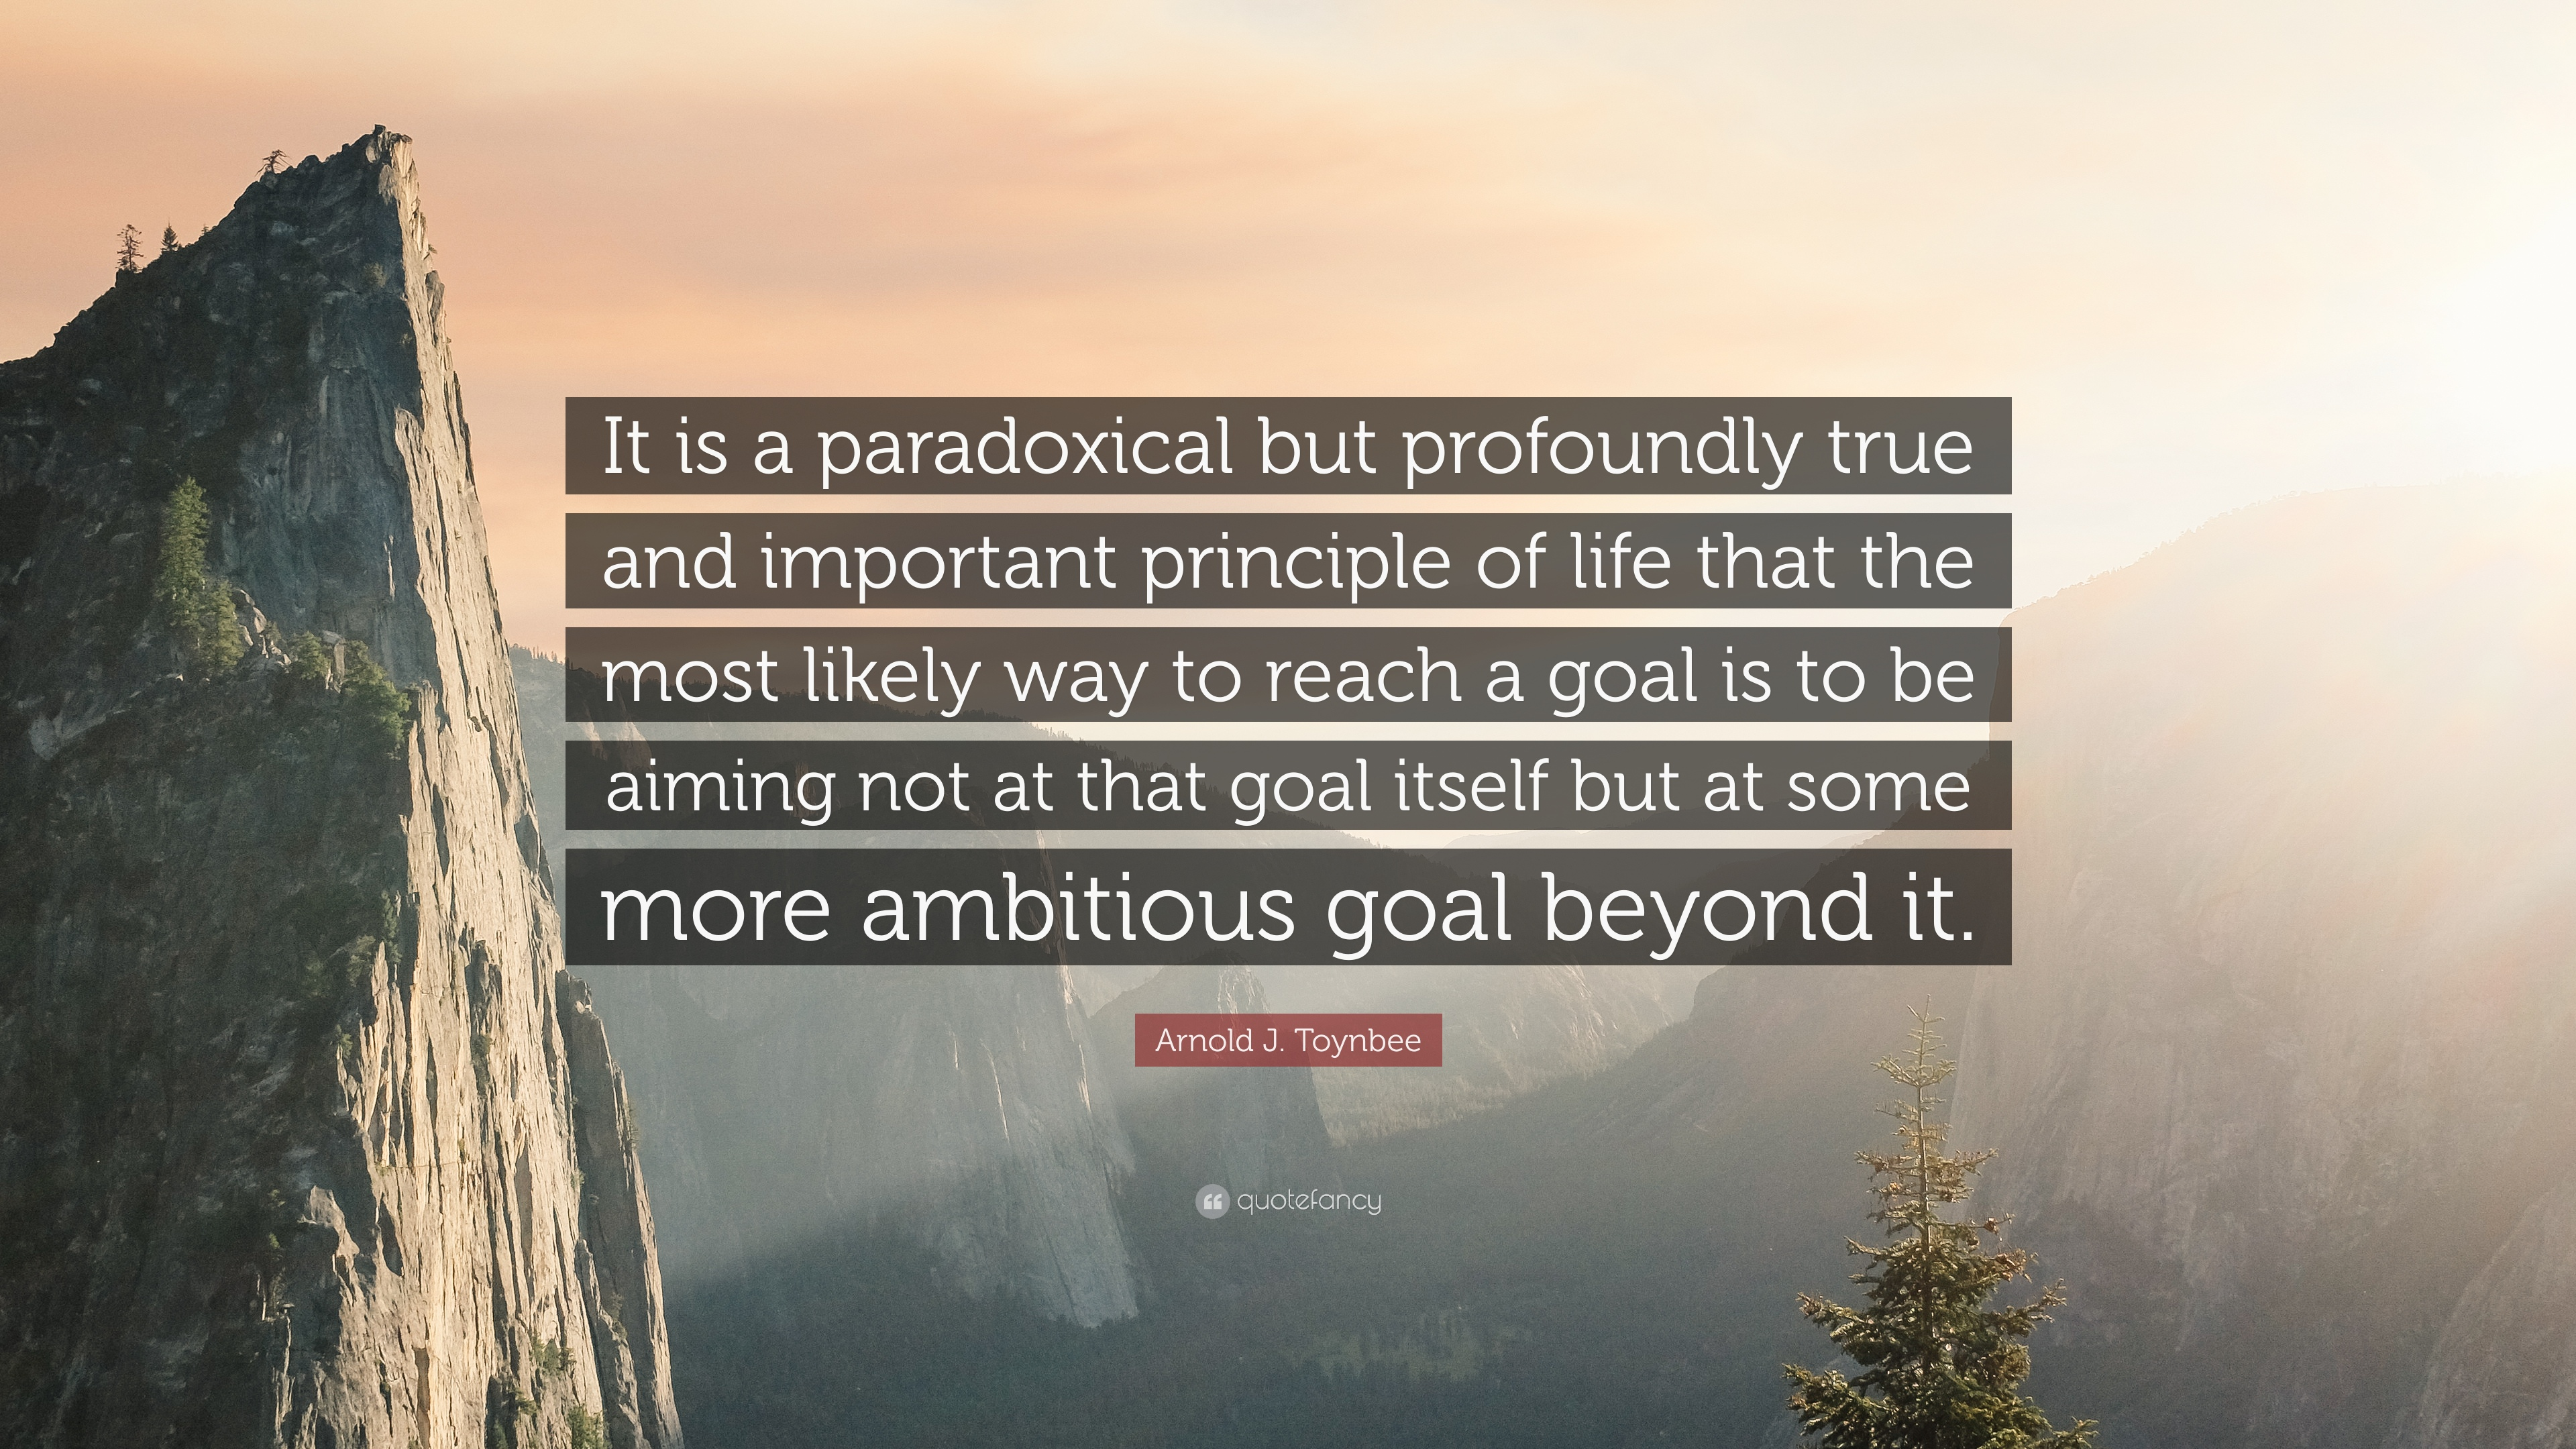 Arnold J Toynbee Quote It Is A Paradoxical But Profoundly True And Important